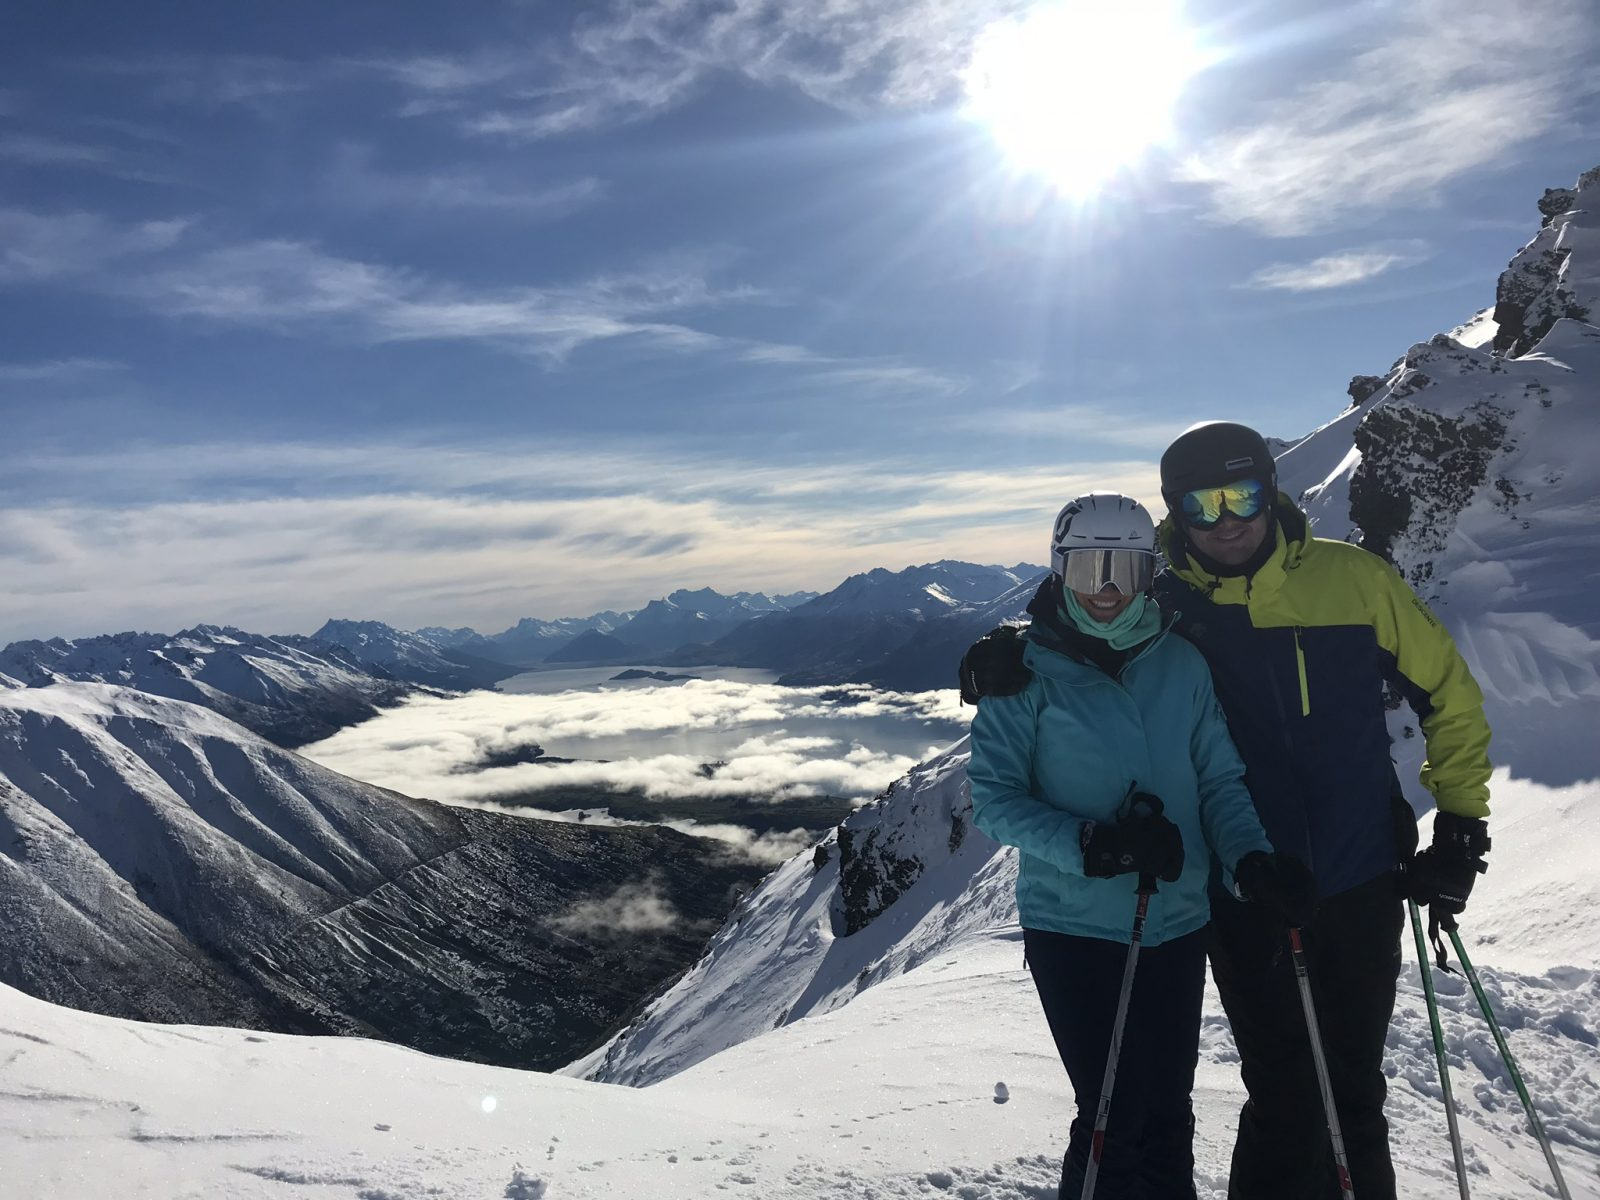 Enjoying the amazing views over the region while heli skiing in New Zealand